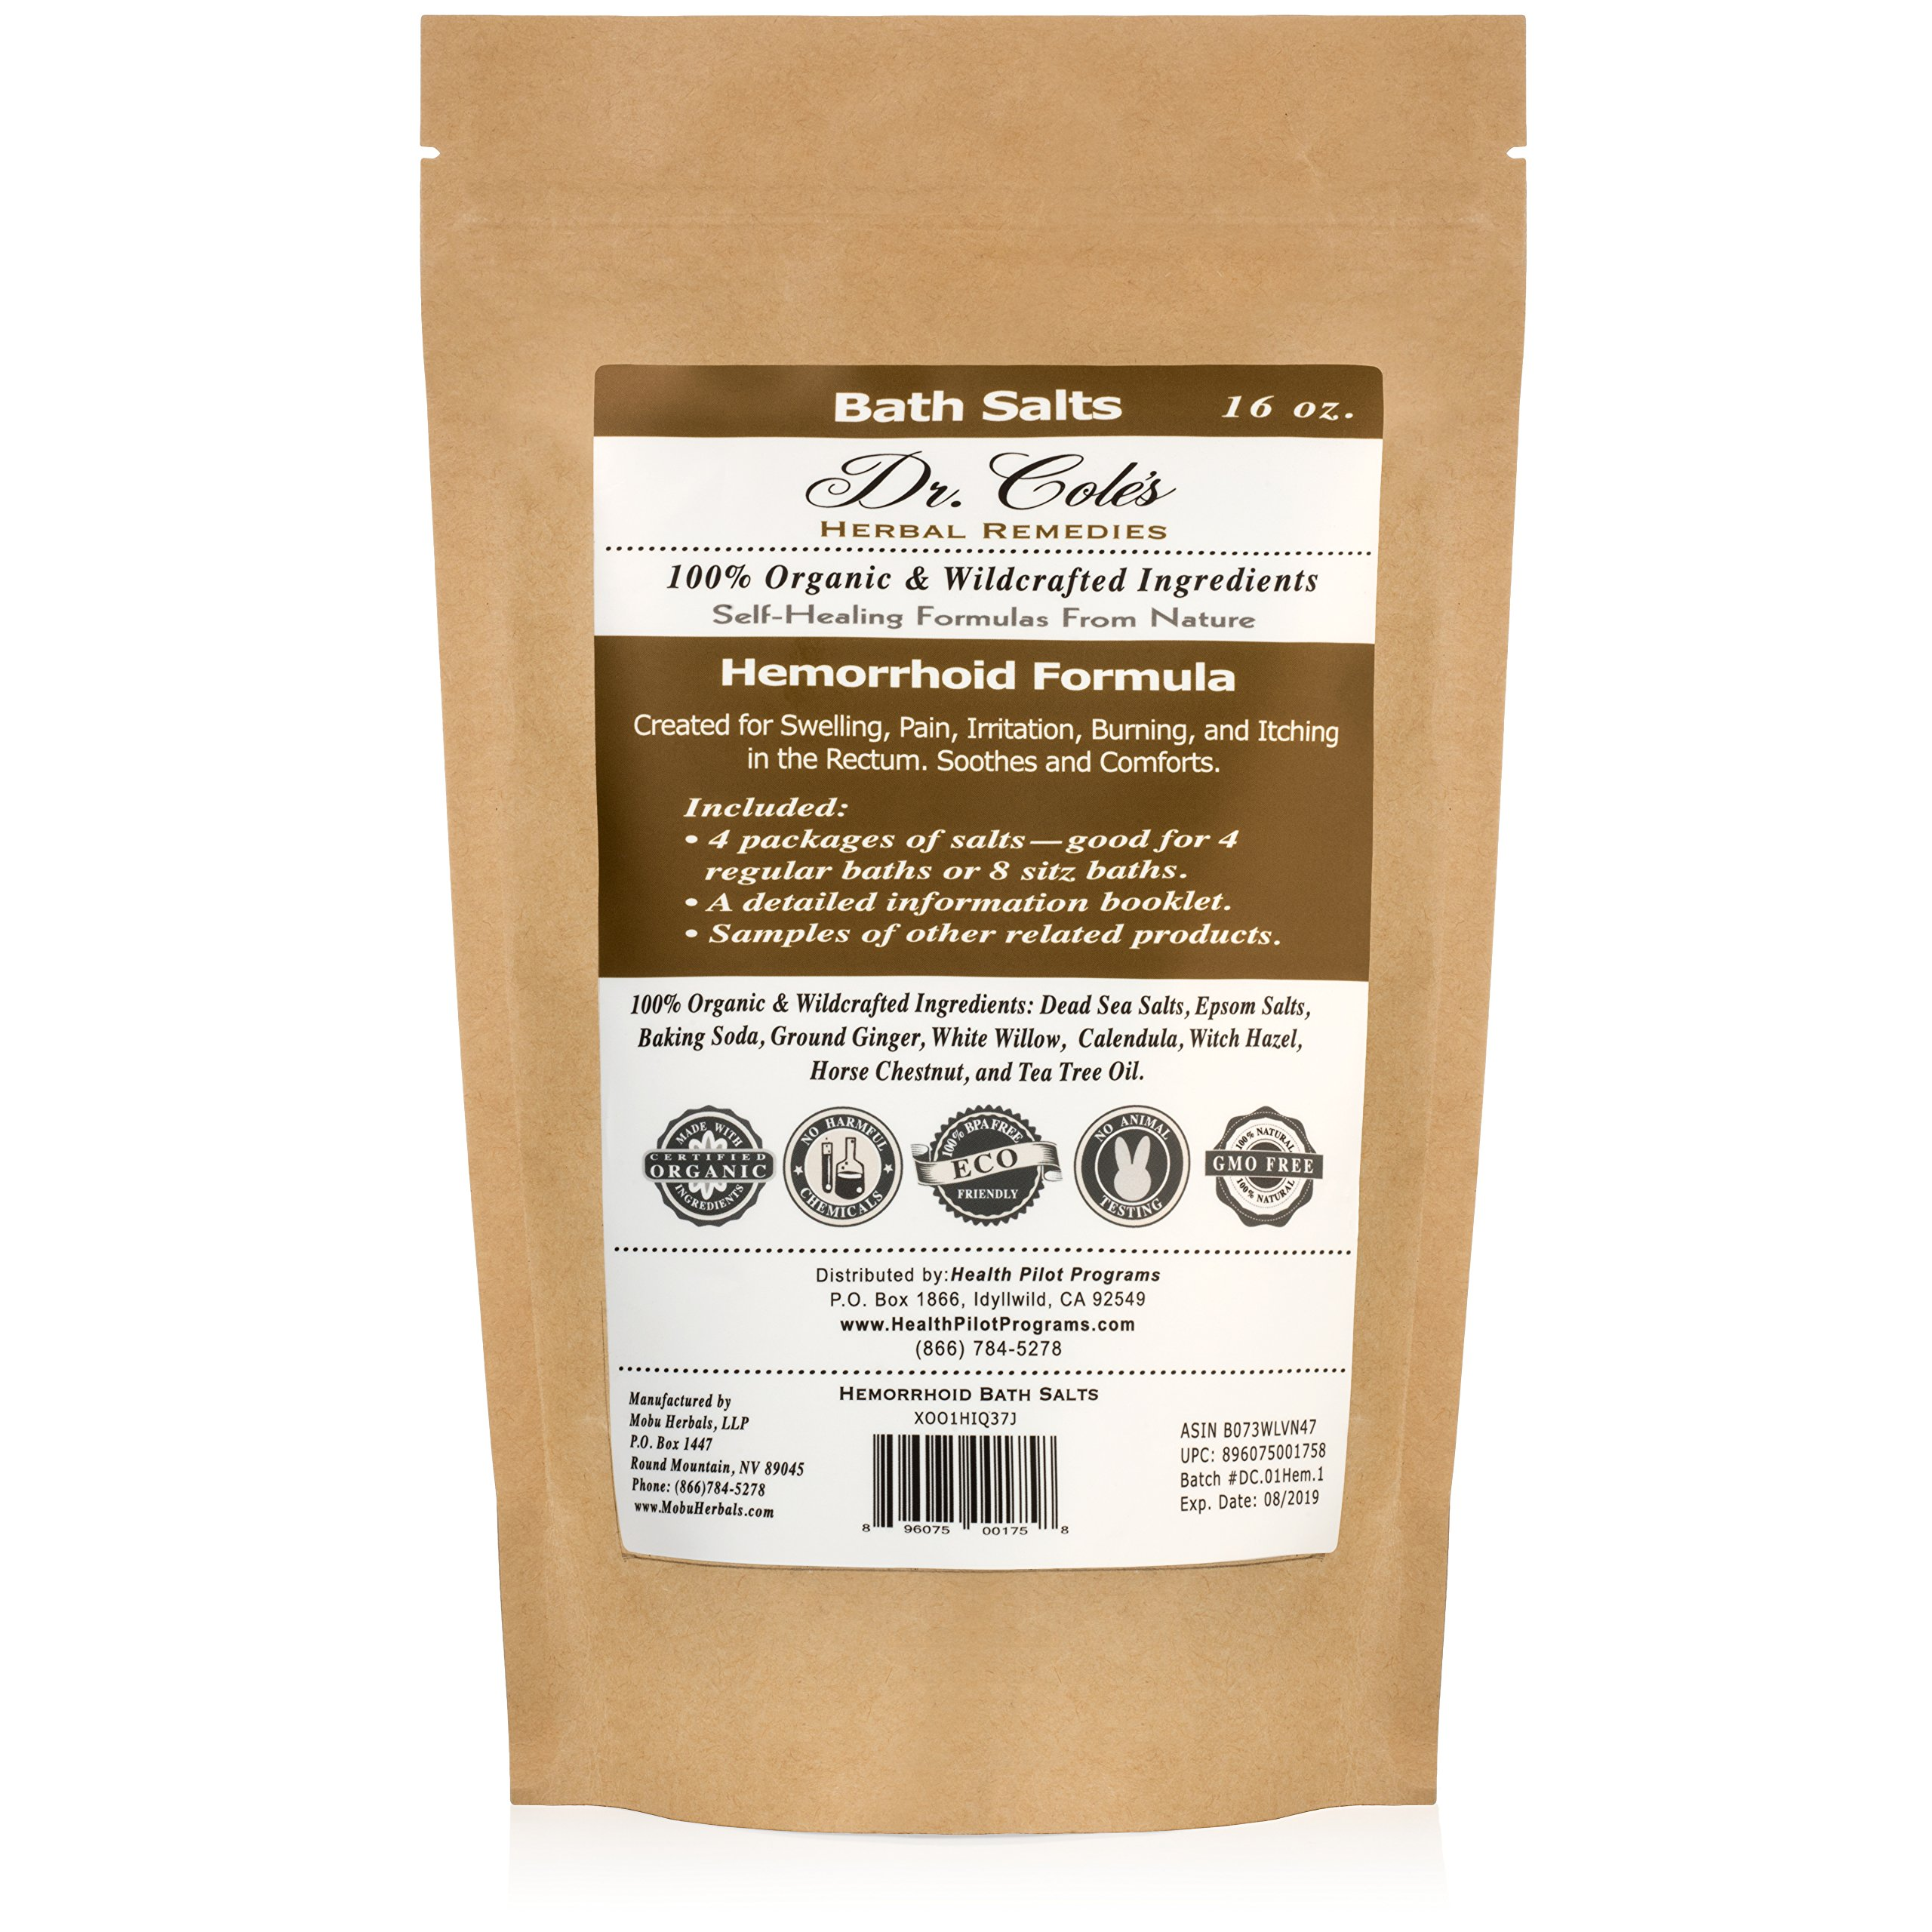 Dr. Cole's Hemorrhoid Sitz Bath Treatment: Organic, Herbal Bath Salts That Soothe Itching, Swelling And Pain Related to Hemorrhoids. Safe For All Ages. For Use In Small Sitz Bath Basin Or Bath Tub. by Dr. Cole's Herbal Remedies